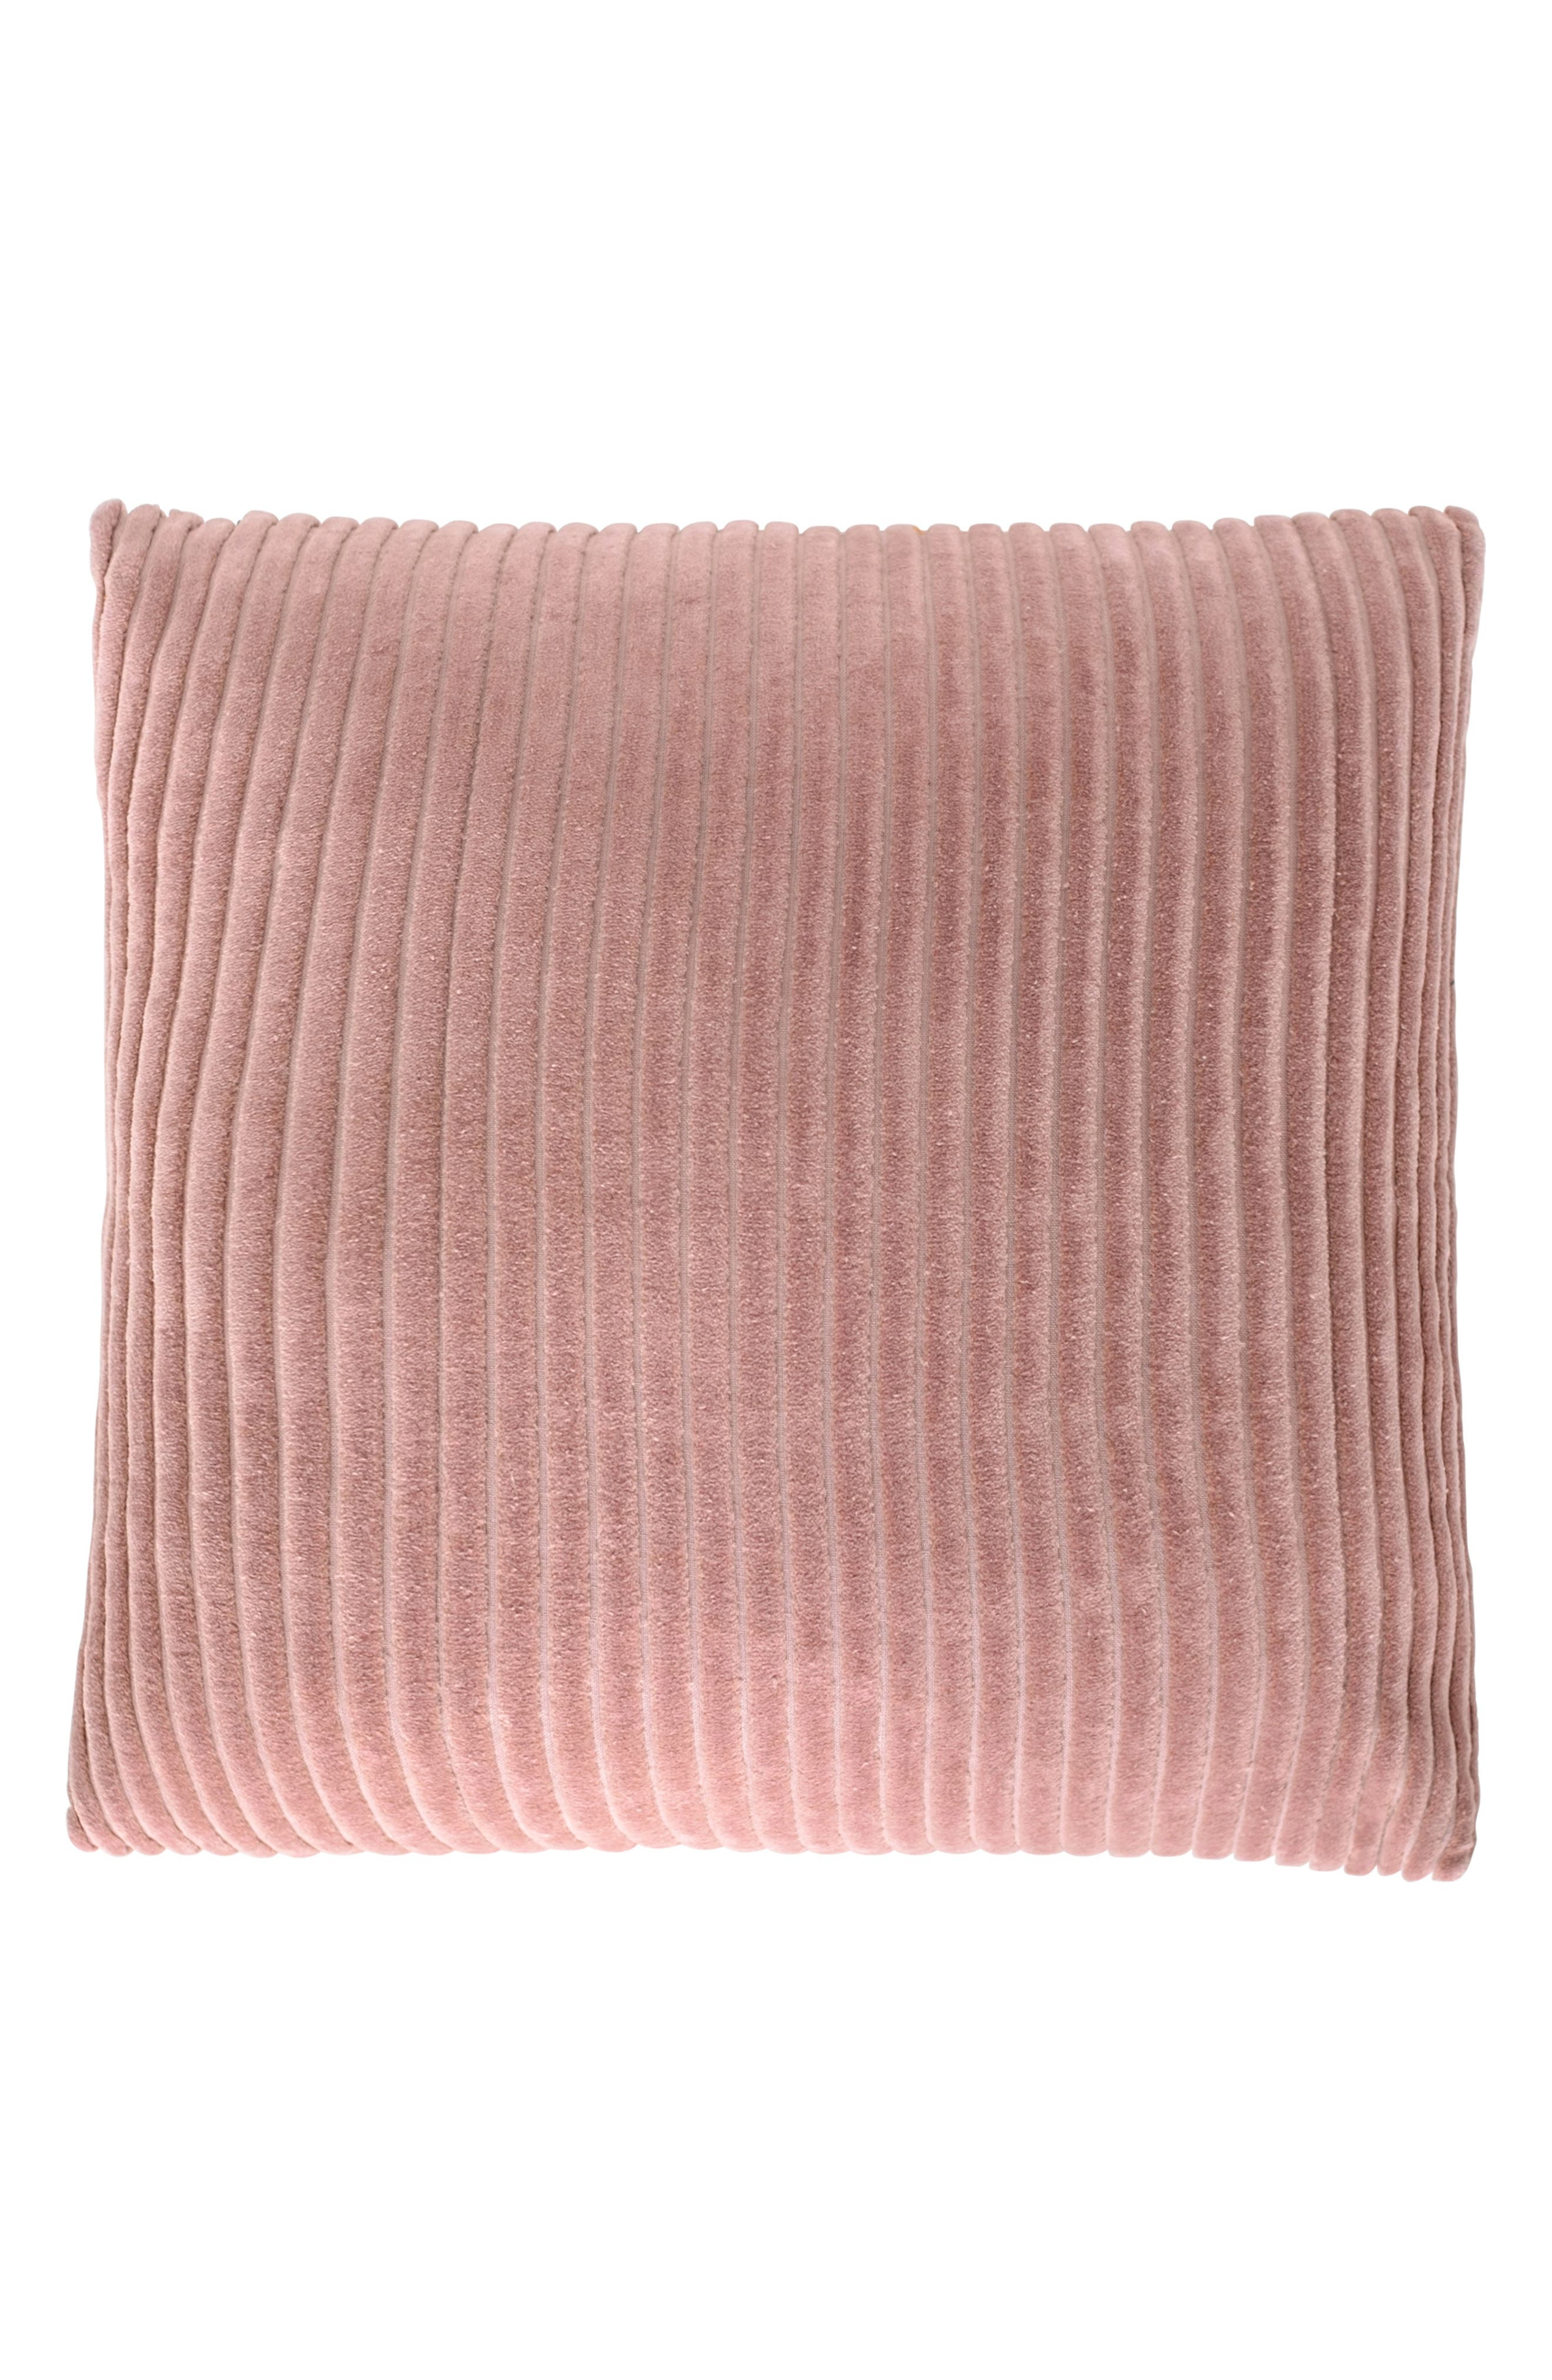 EADIE LIFESTYLE, Ribbed Velvet Scatter Accent Pillow, Main thumbnail 1, color, MUSK